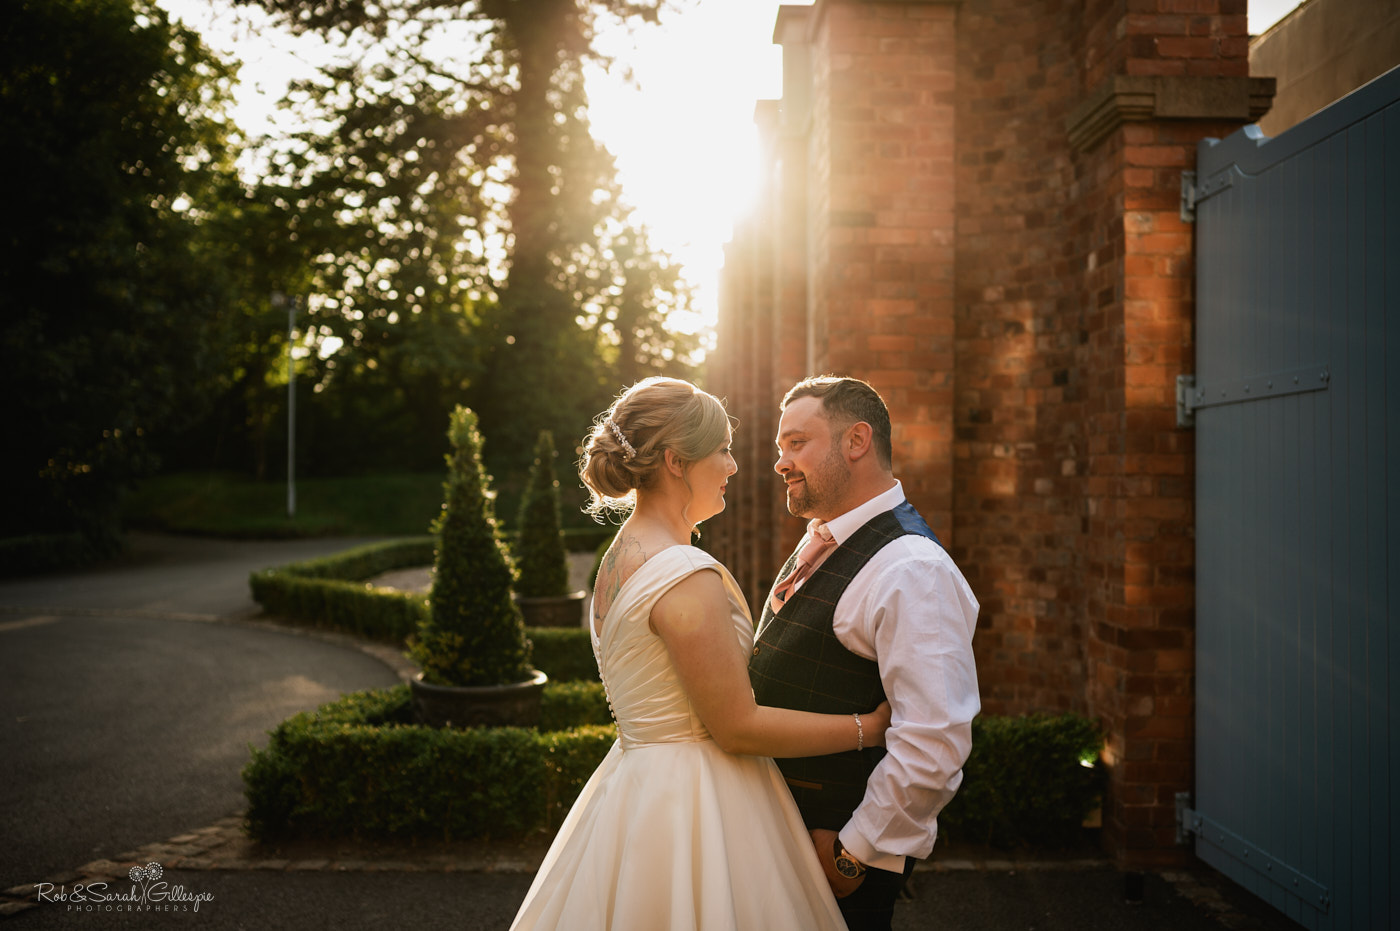 Wedding couple photos at Pendrell Hall with beautiful light